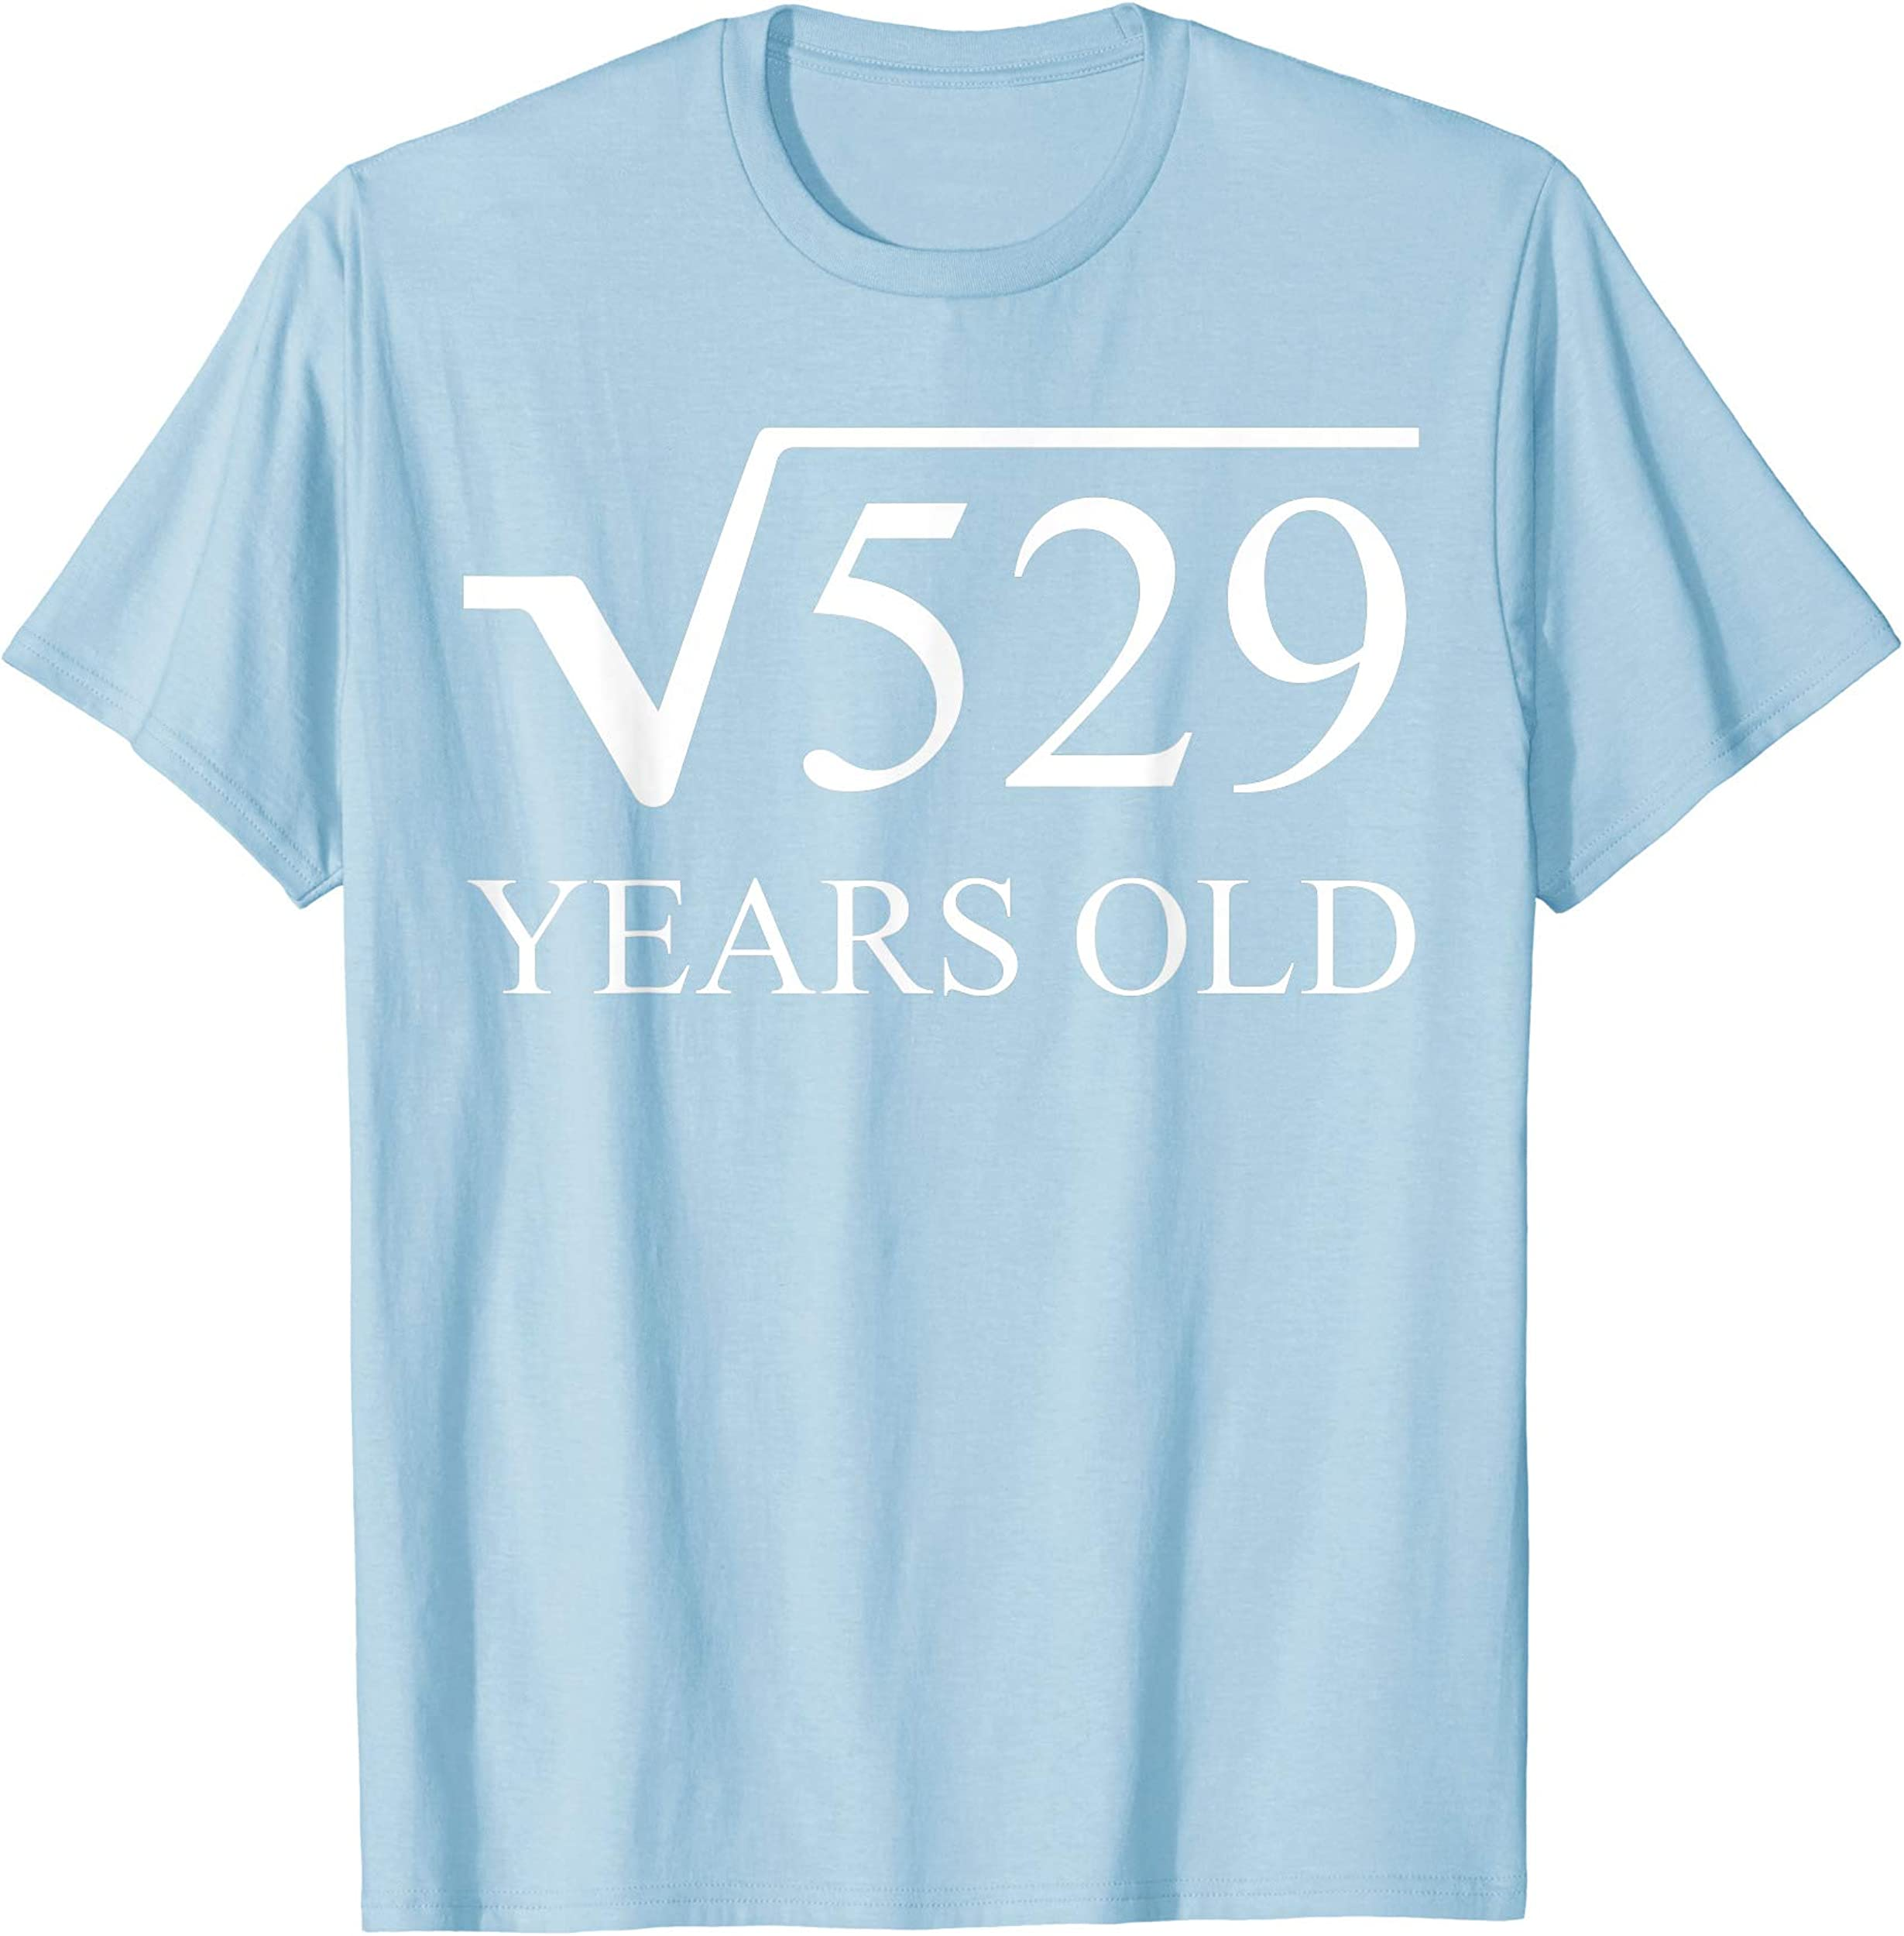 23rd Birthday Tee Shirt 23 Years Old Square Root of 529